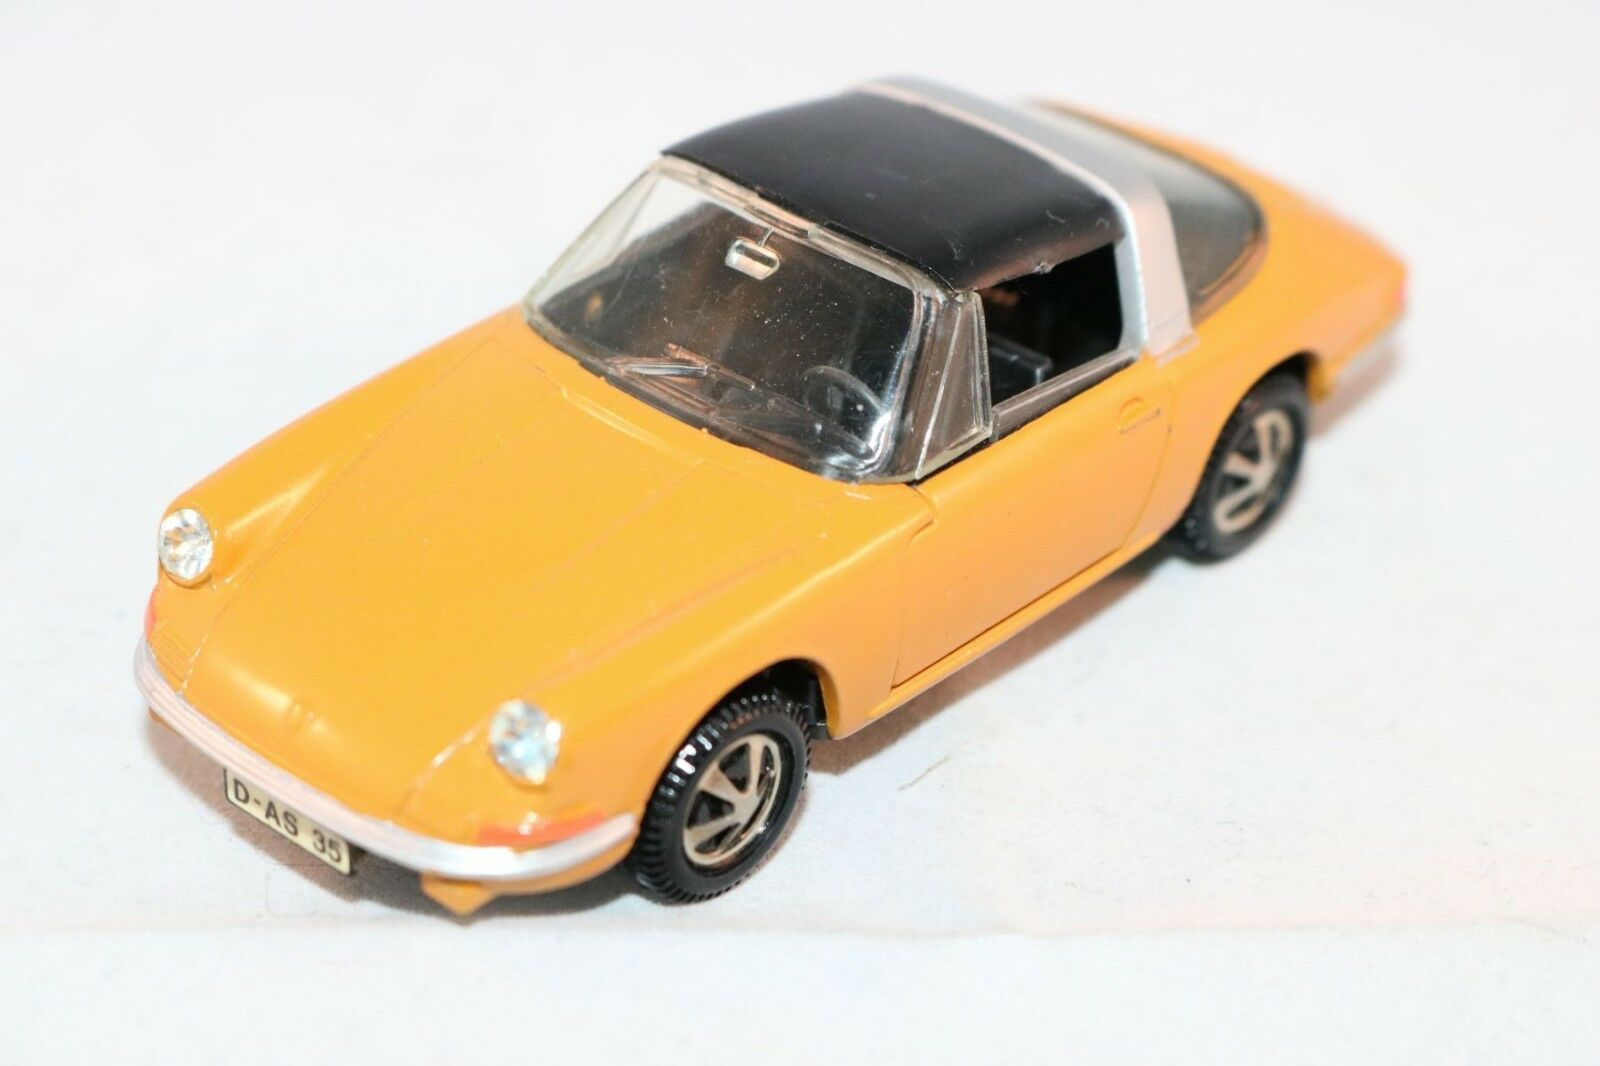 Marklin 1800 Porsche 911 Targa perfect mint all original condition scarce colour